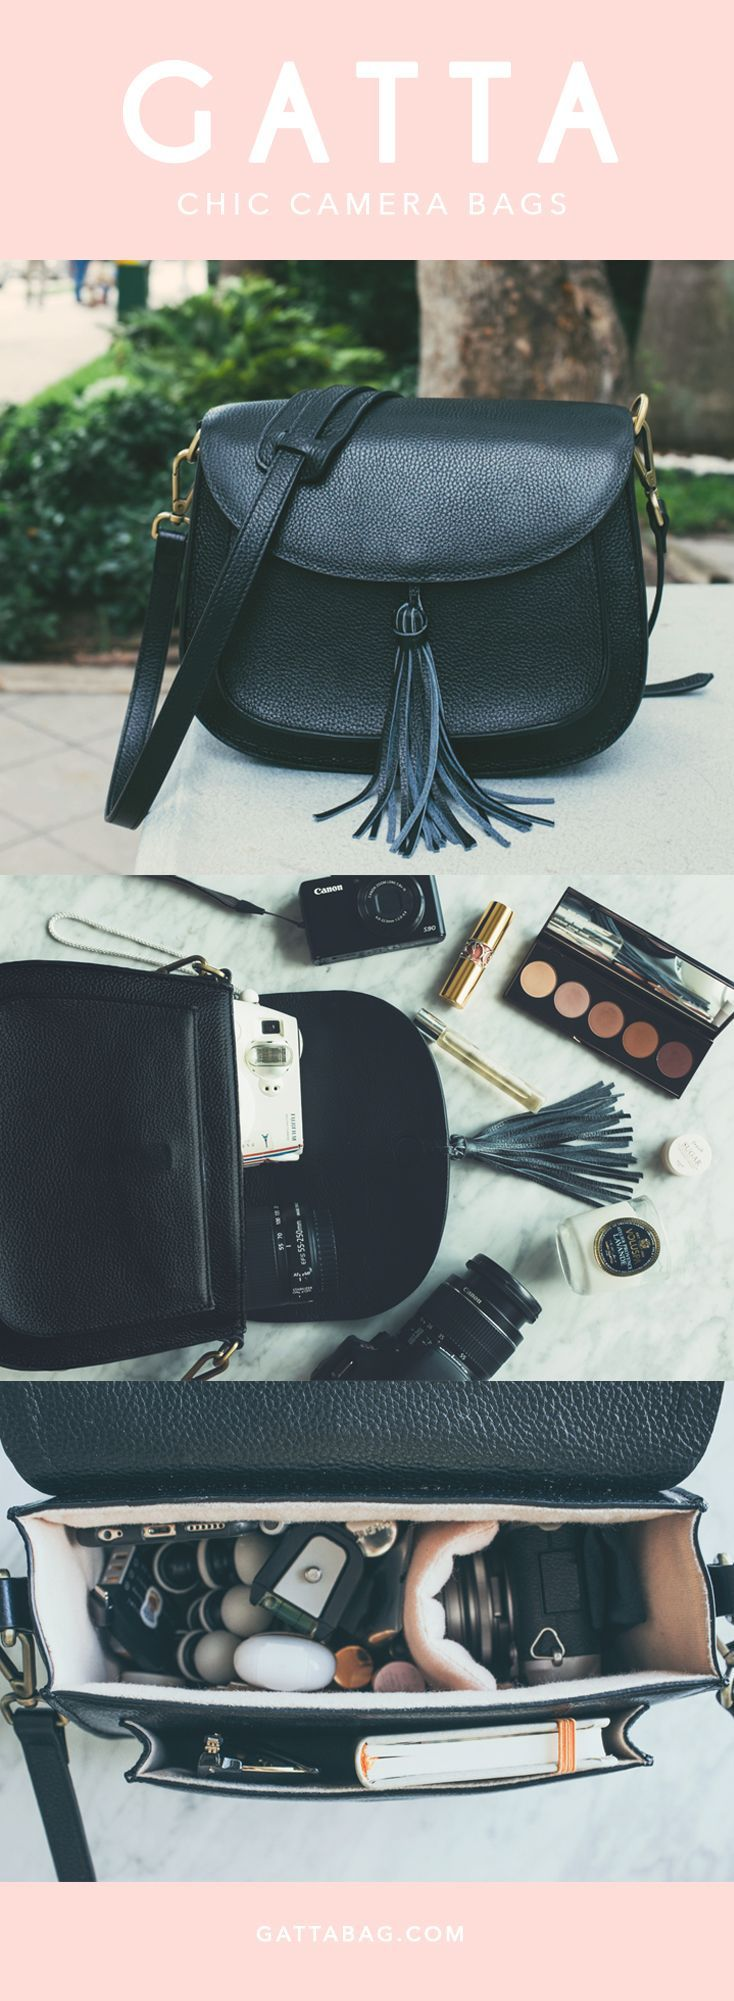 Chic Camera Bags - Finally a cute camera for women that looks fashionable and stylish! For DSLR and Mirrorless Cameras.